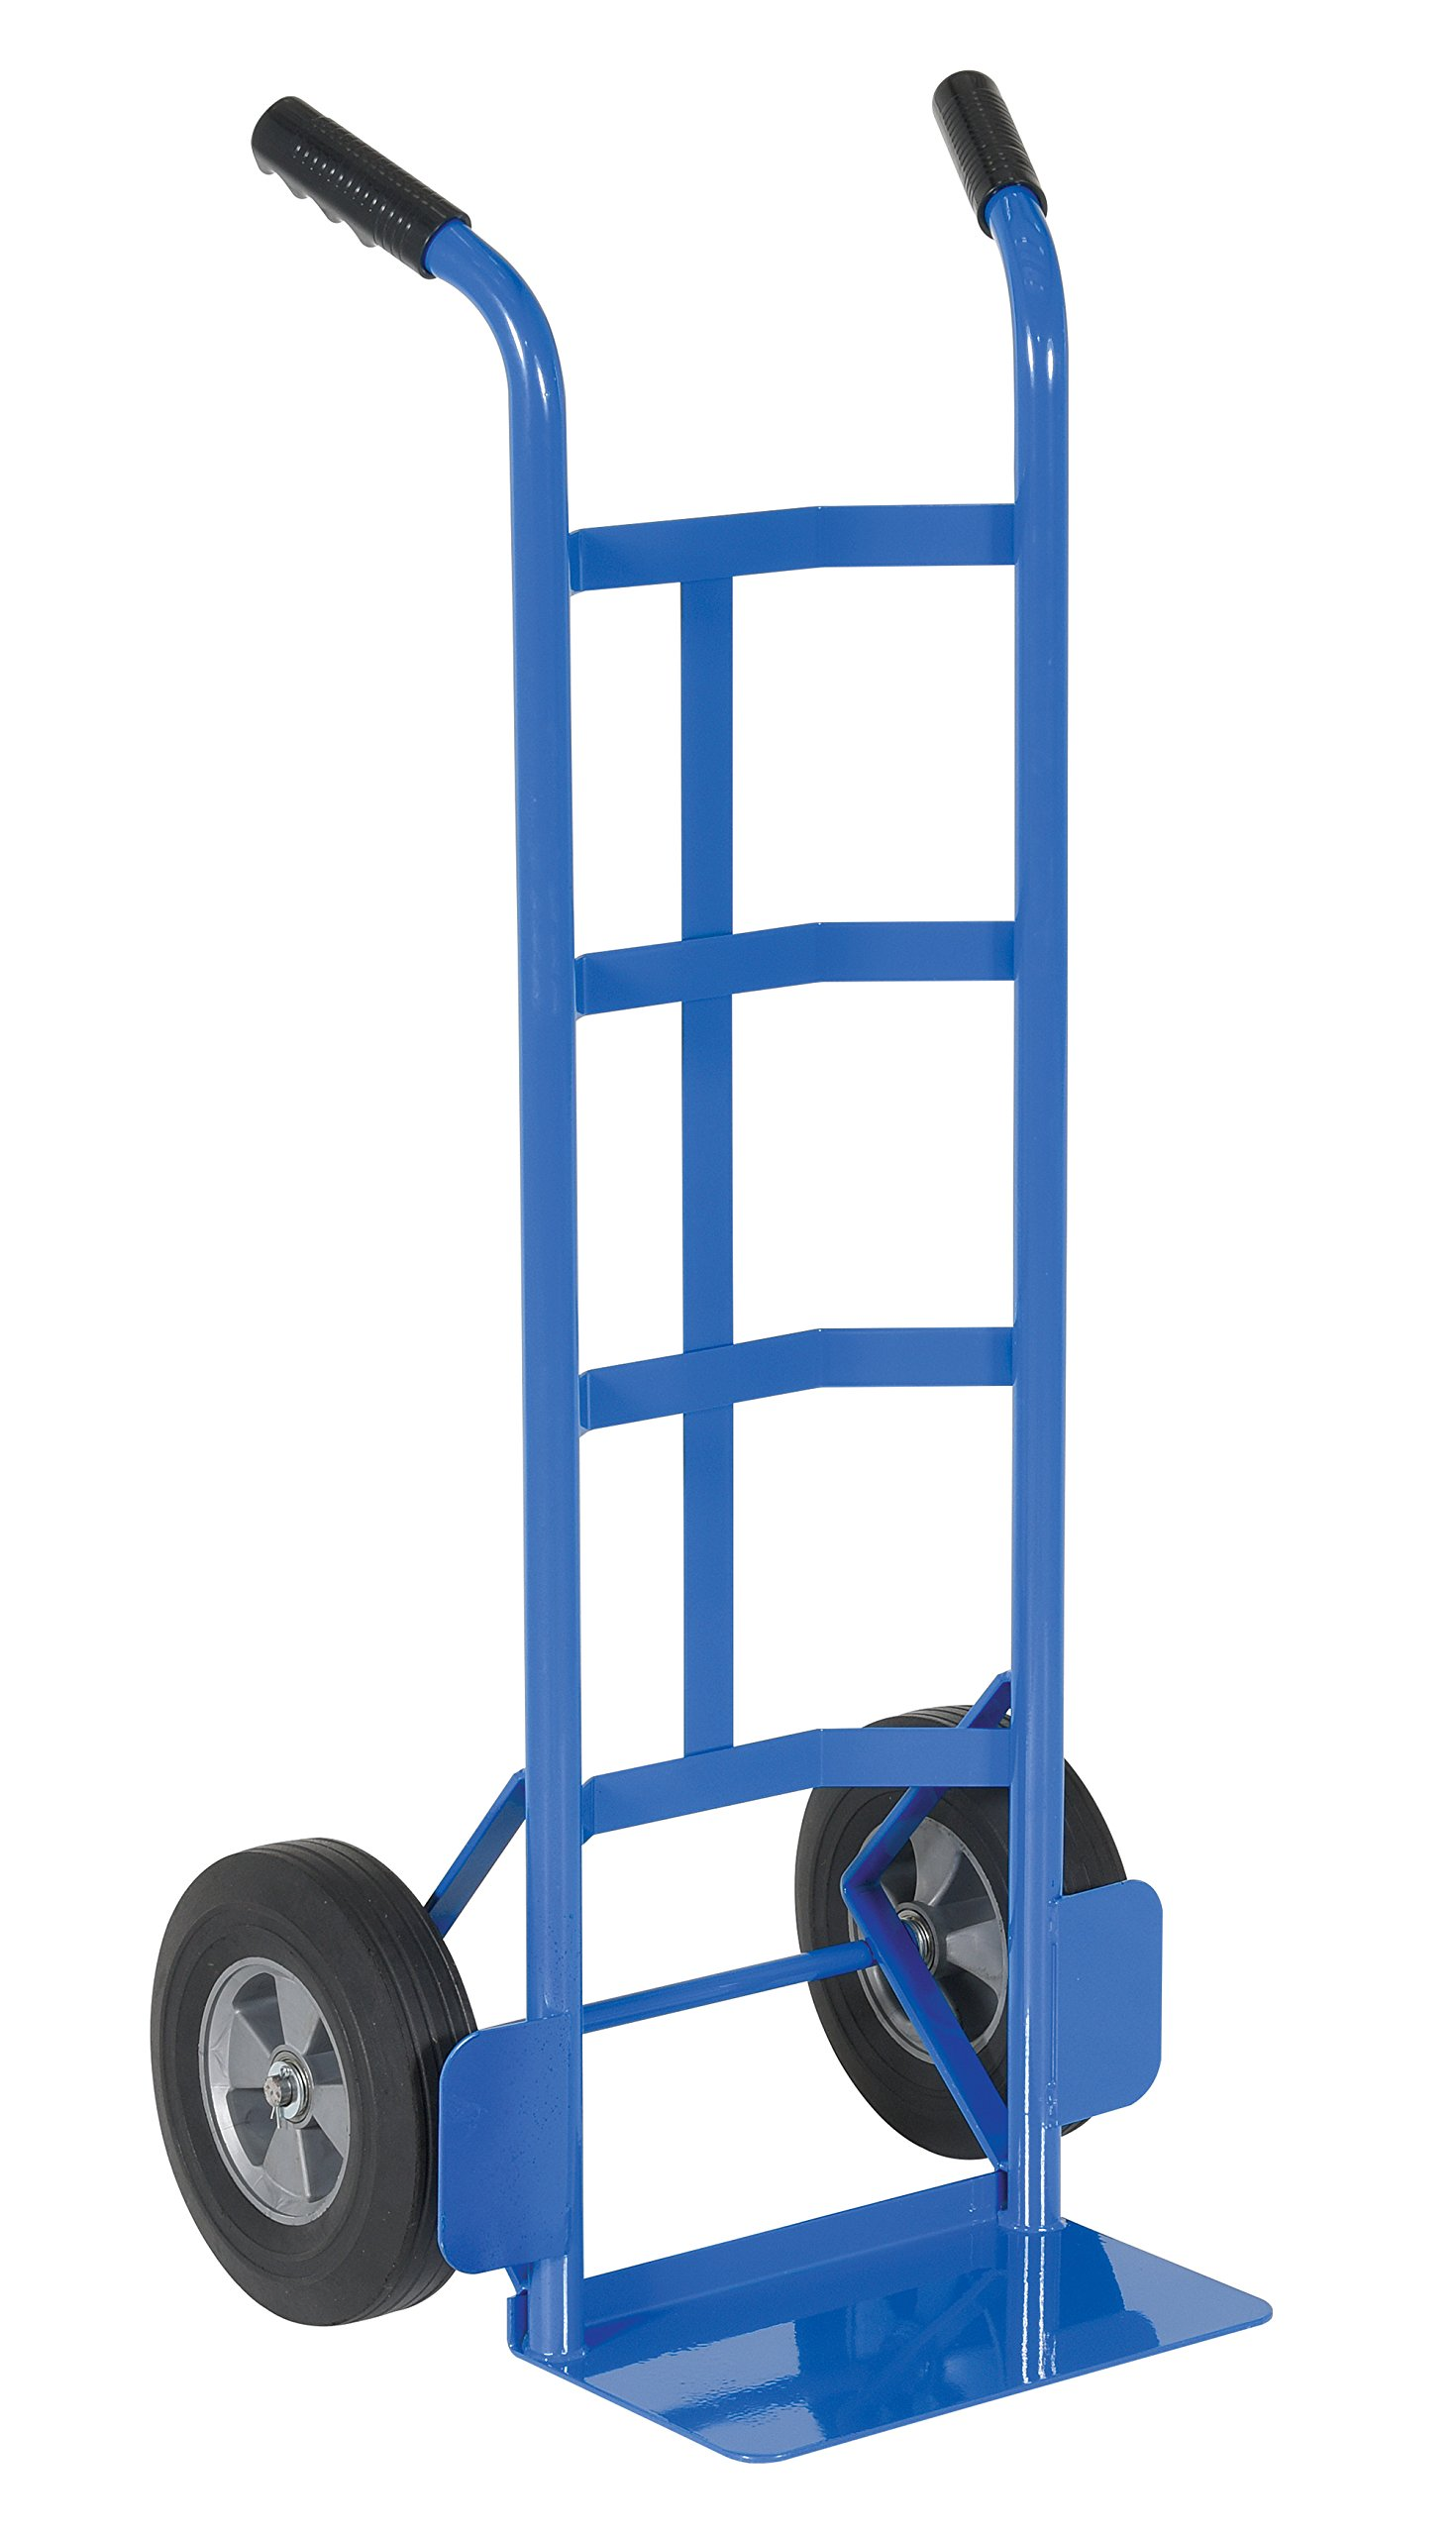 Vestil DHHT-500S-HR Steel Hand Truck with Dual Handle,Hard Rubber Wheels, 500 lbs Load Capacity, 44-1/2'' Height, 21'' Width X 17-1/2'' Depth